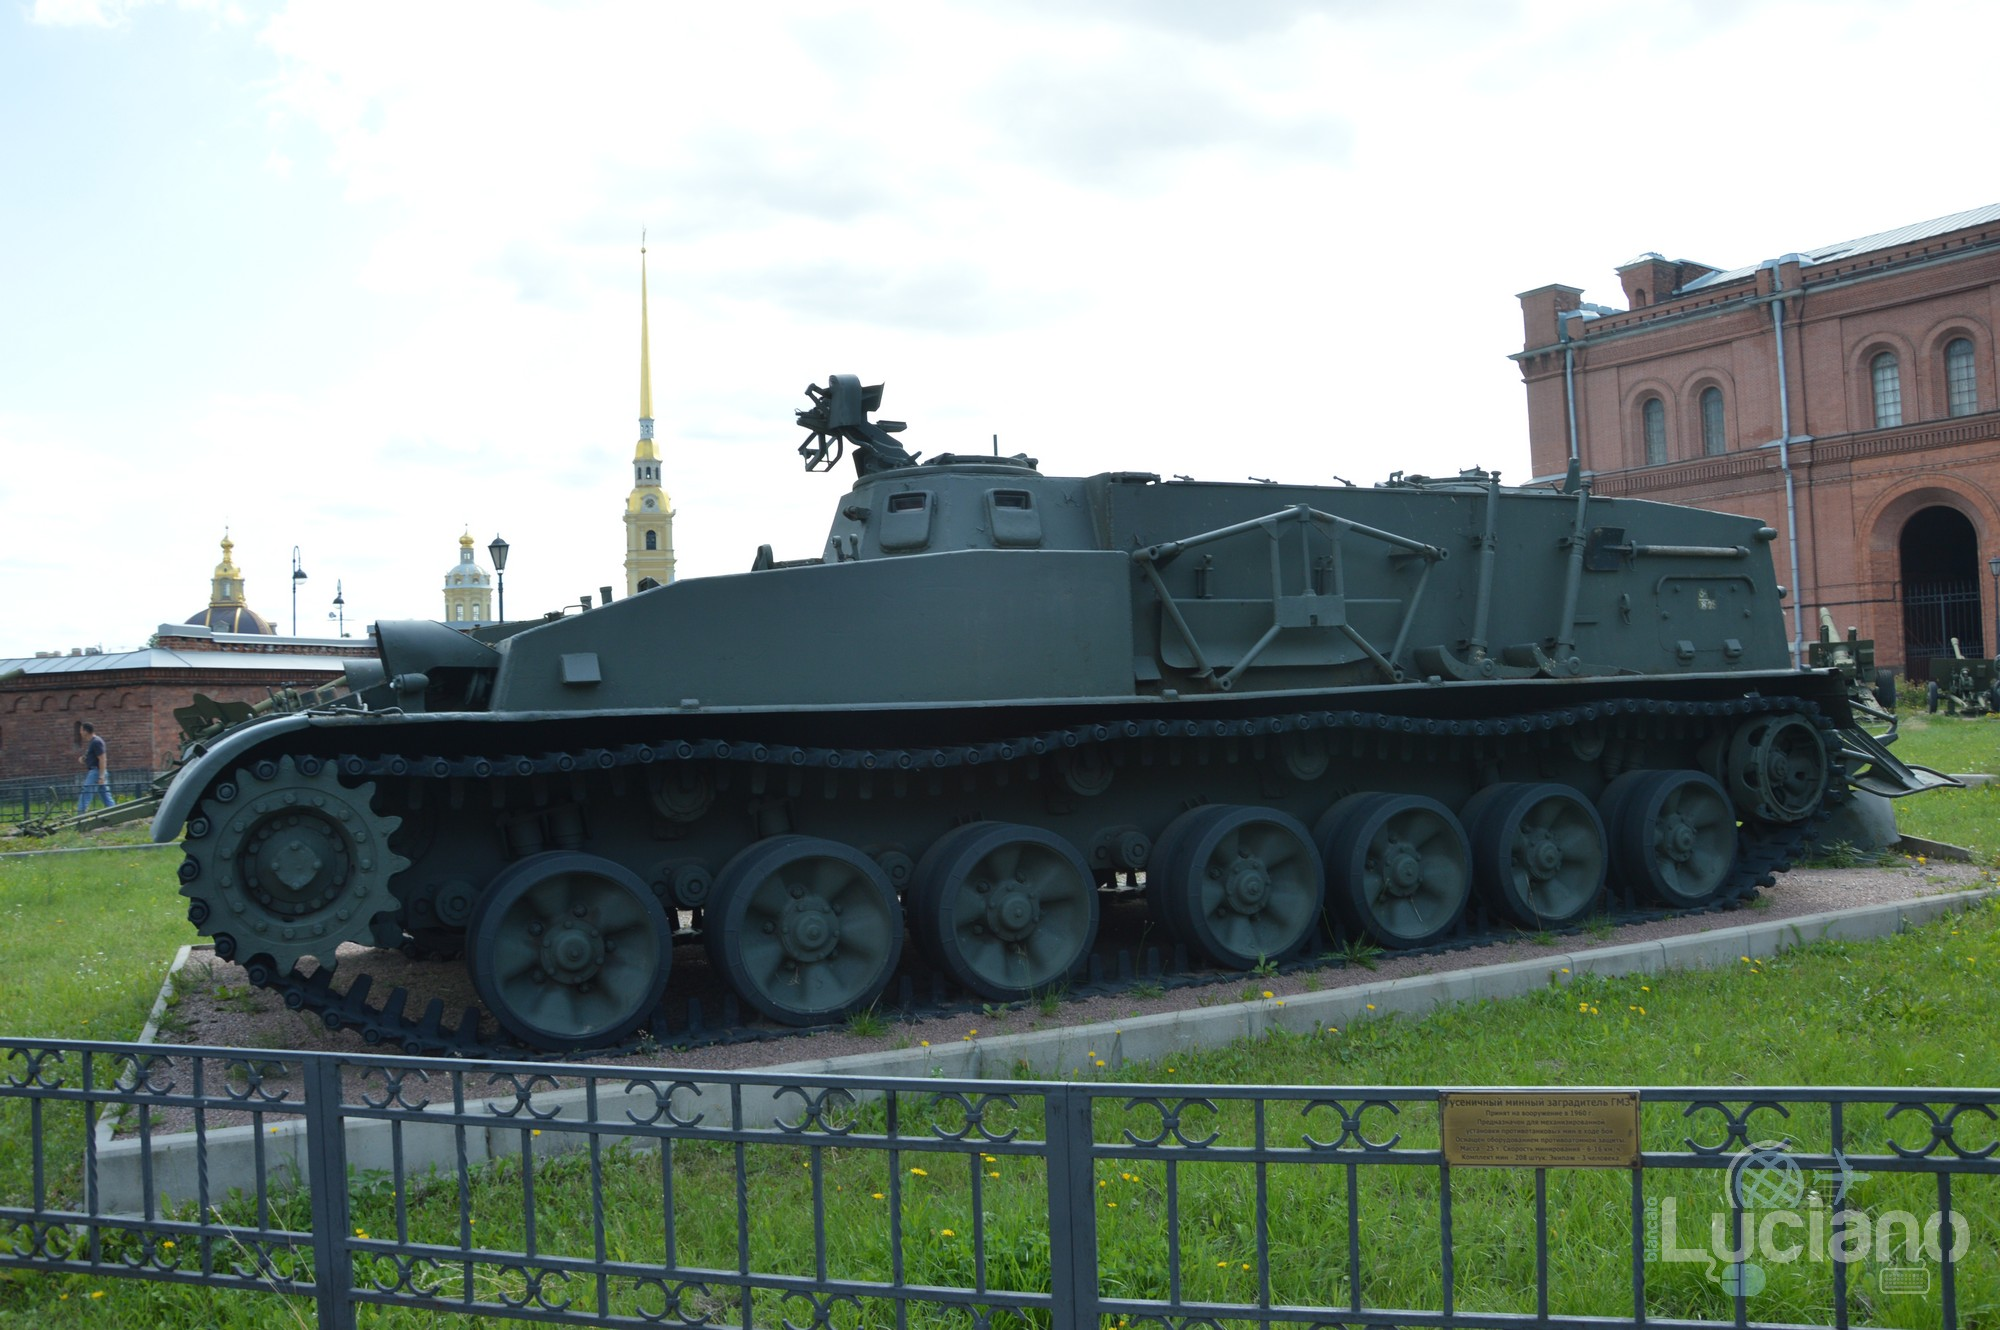 Military-Historical-Museum-of-Artillery-Engineer-and-Signal-Corps-St-Petersburg-Russia-Luciano-Blancato- (78)